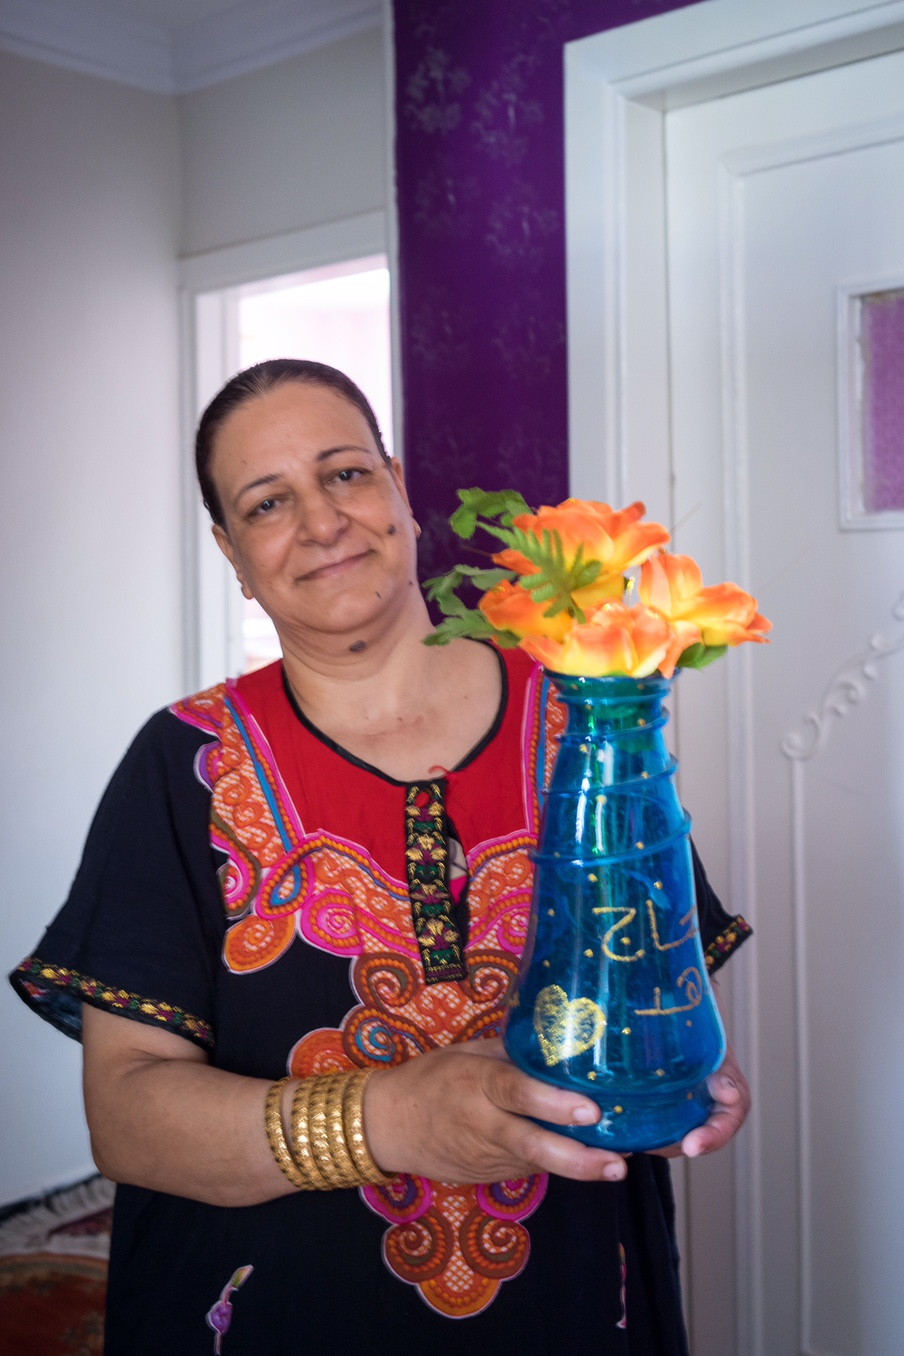 Hassan's wife with her own work